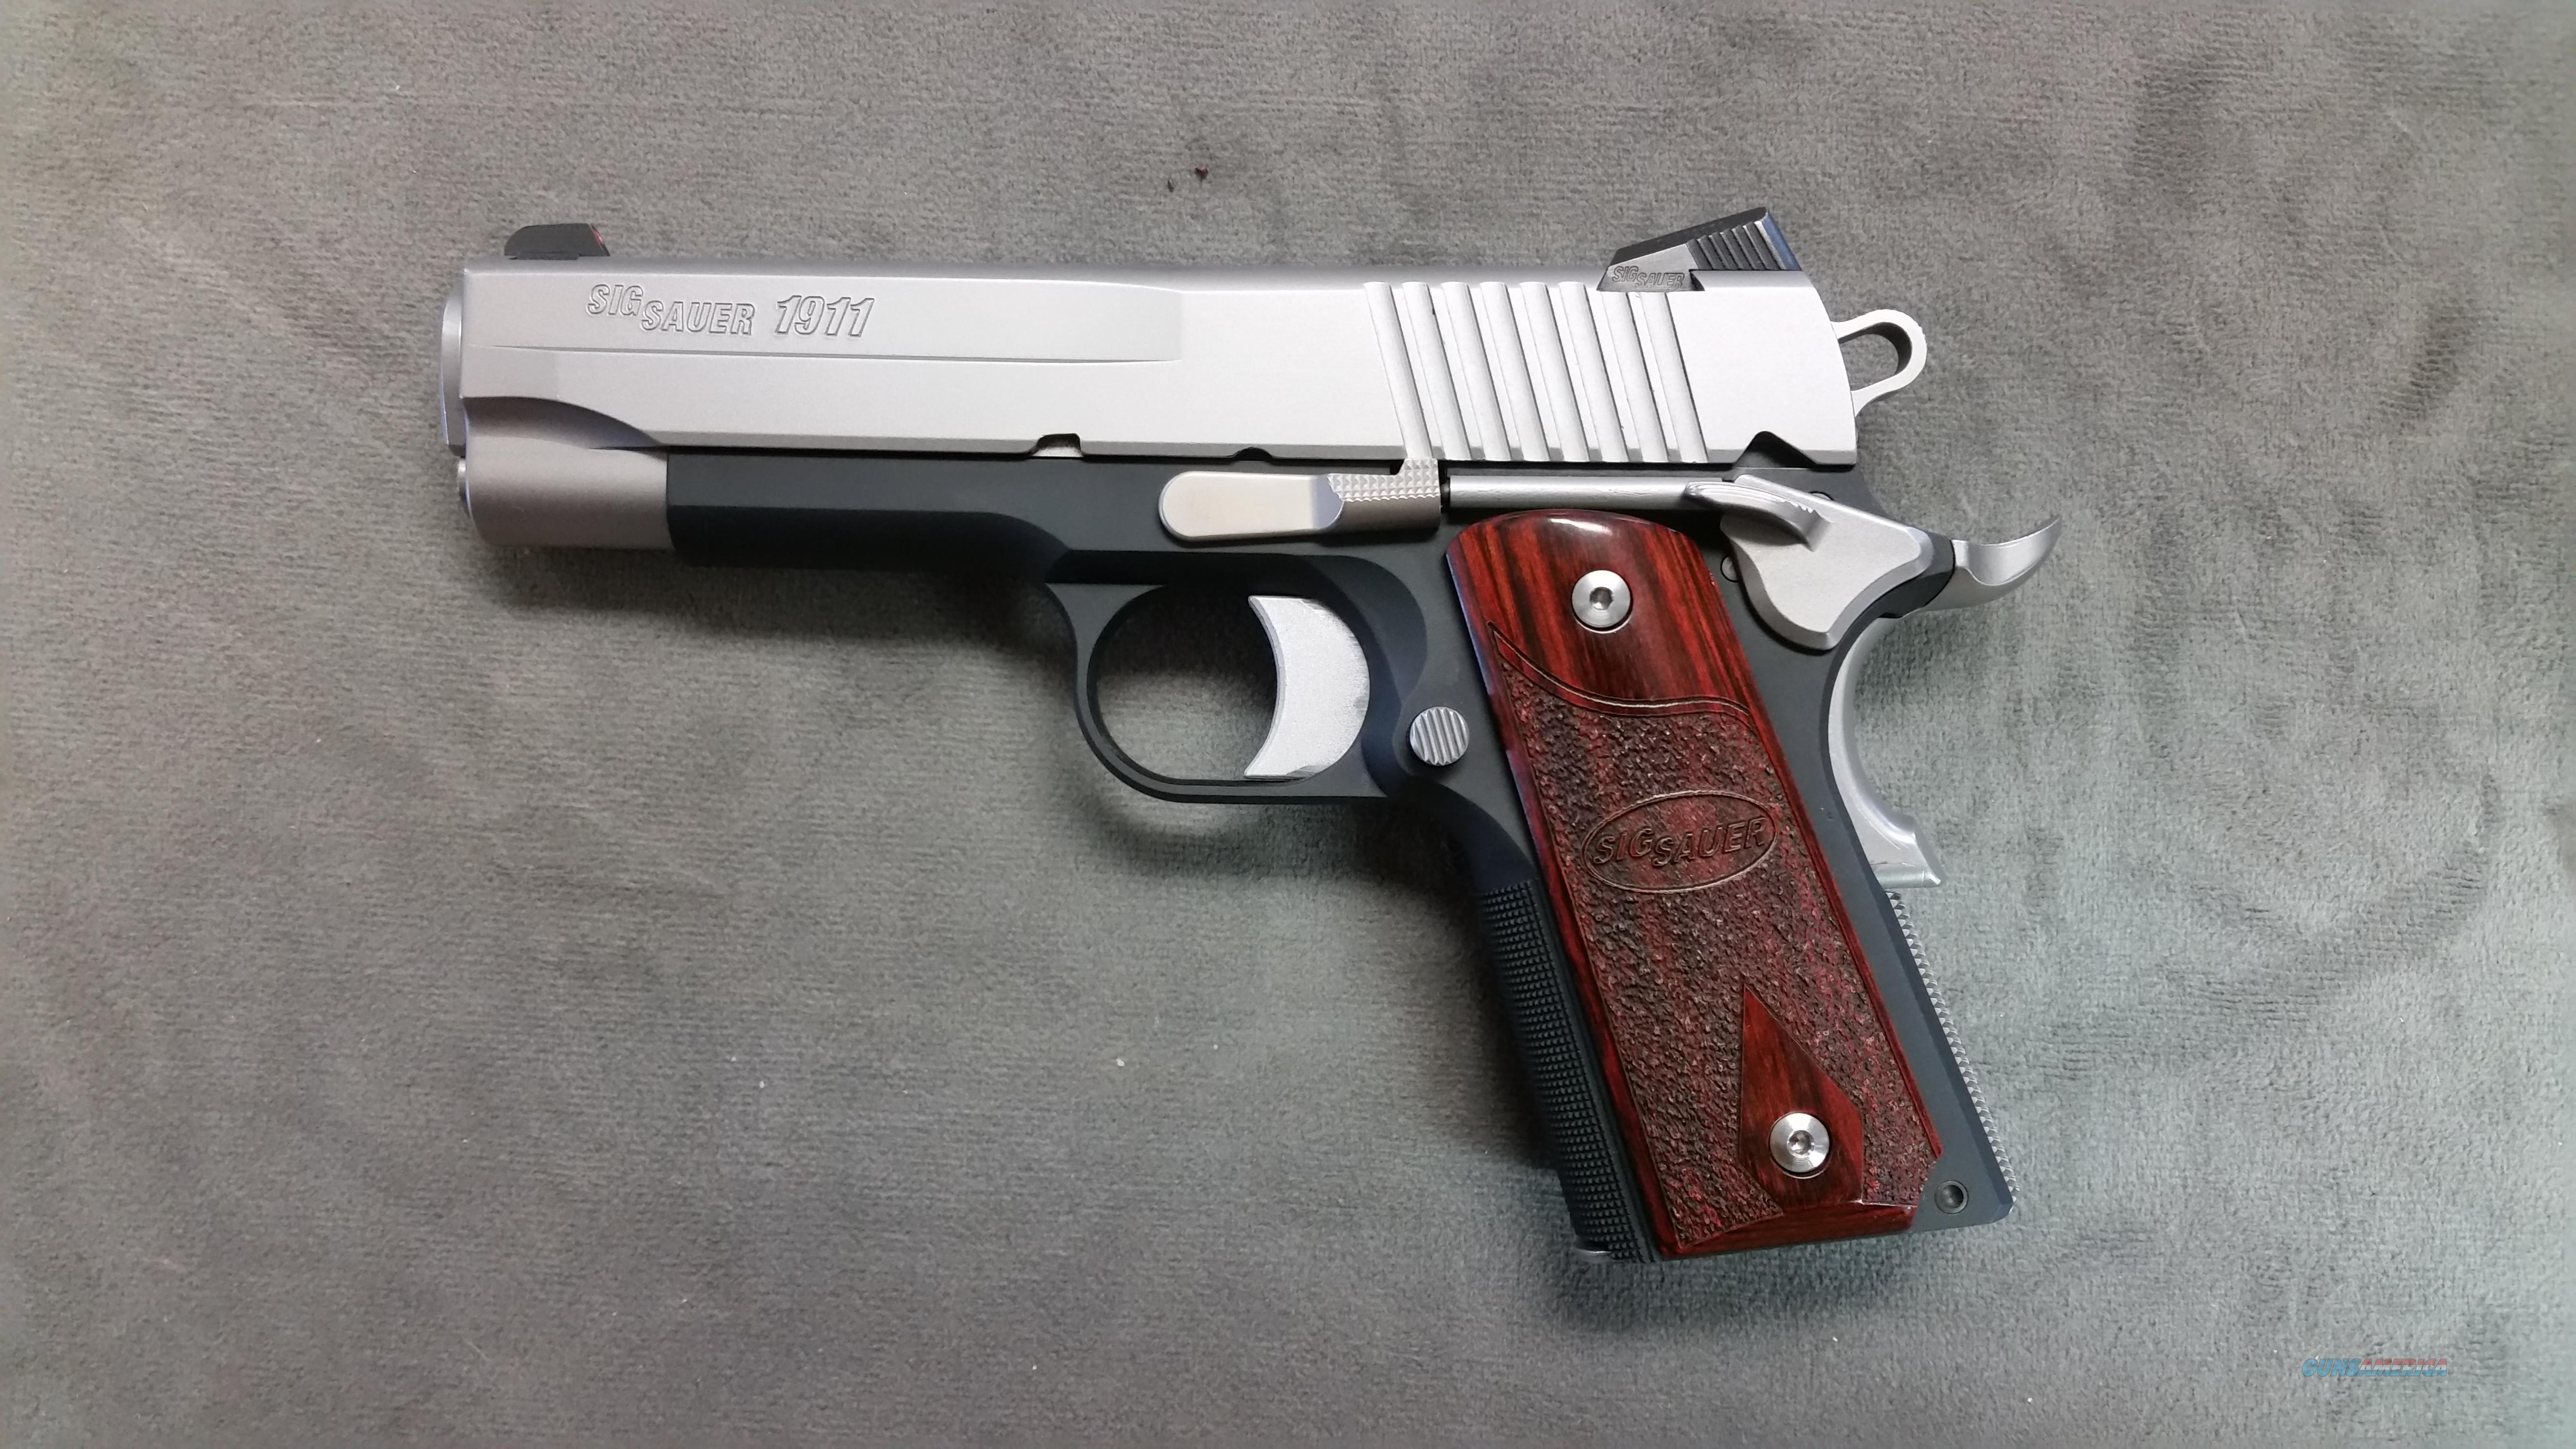 Pre-Owned Sig Sauer 1911 C3 Bi-Tone 45ACP - 4 magazines  Guns > Pistols > Sig - Sauer/Sigarms Pistols > 1911